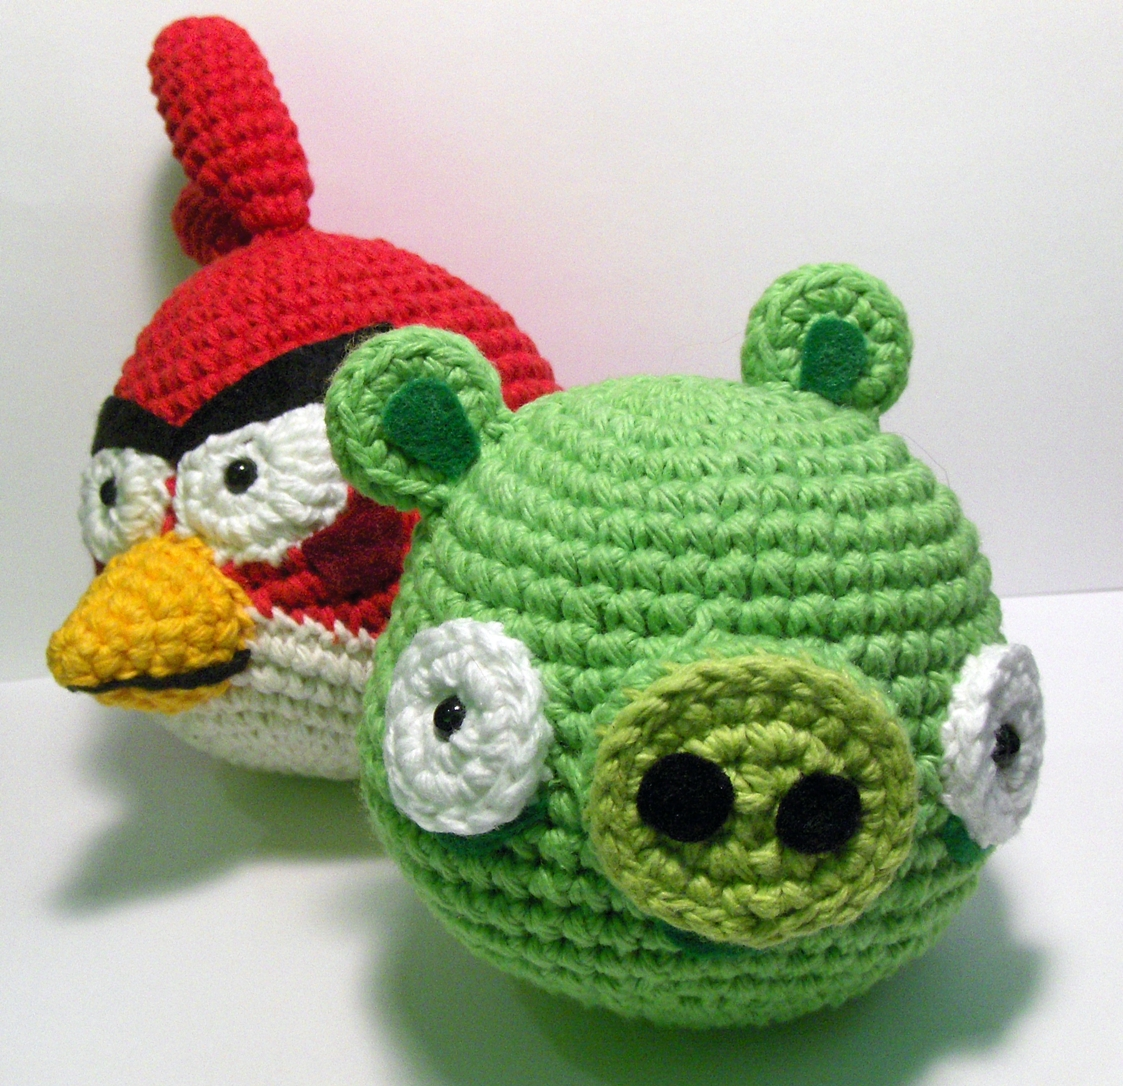 Nerdigurumi - Free Amigurumi Crochet Patterns with love for the ... | 1086x1123